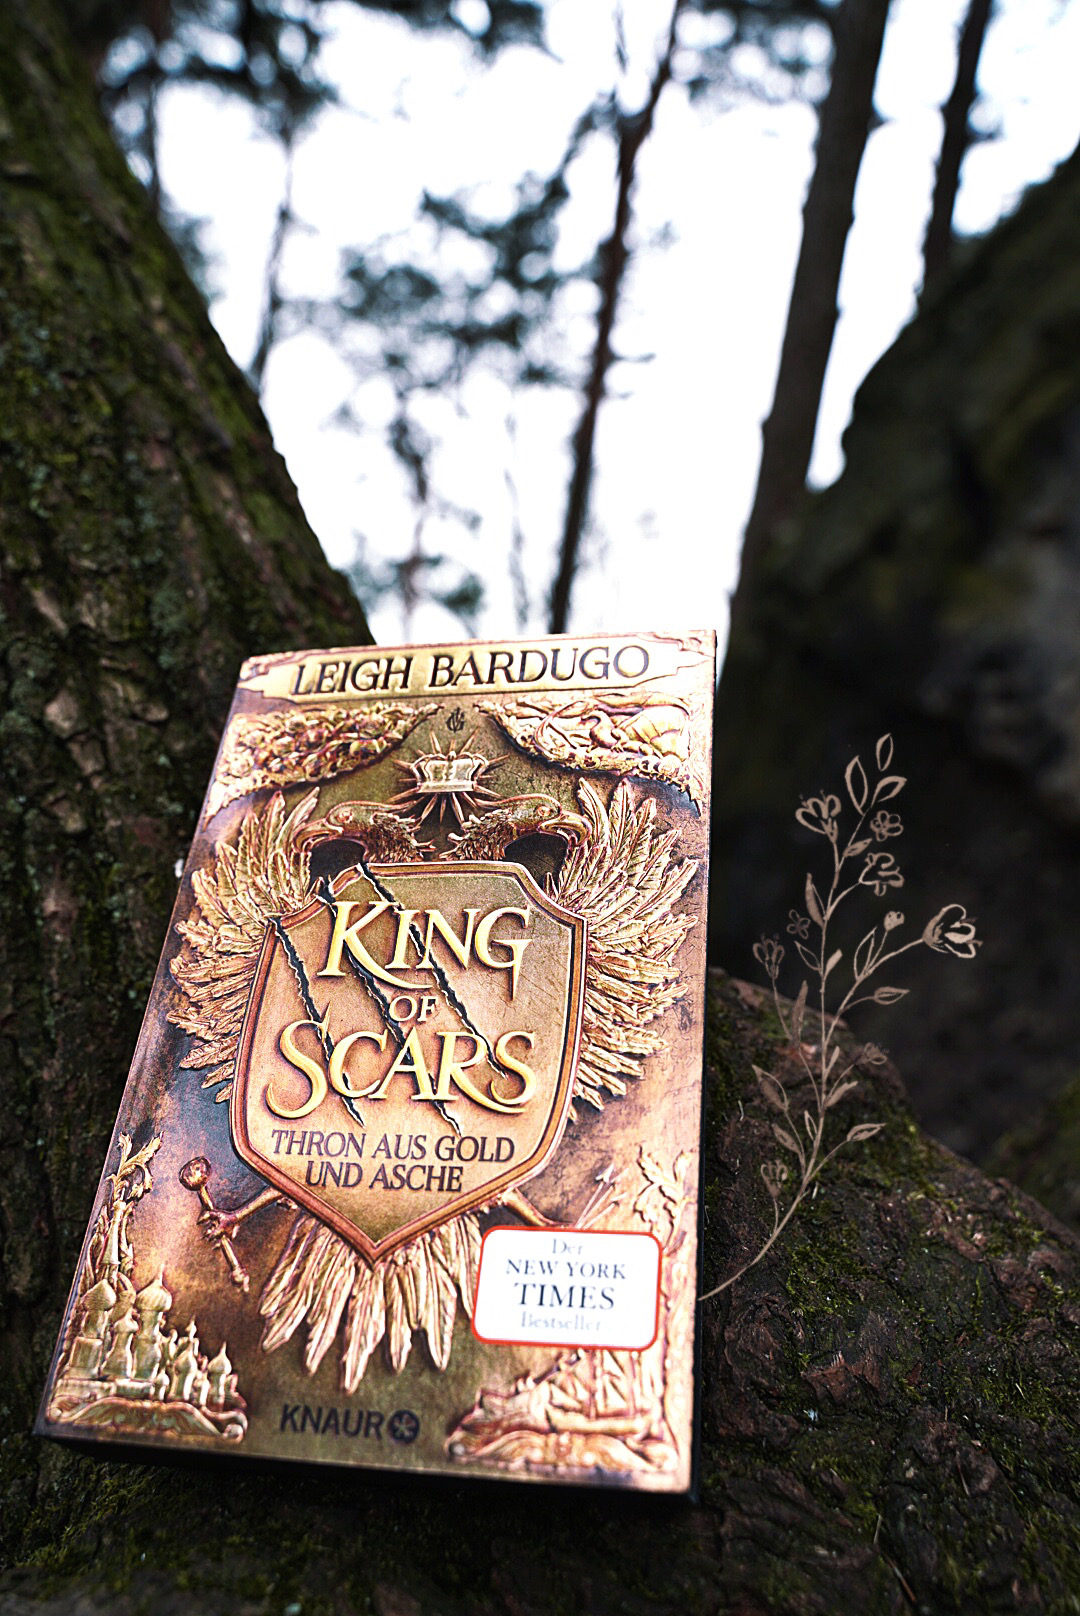 King of scars – Leigh Bardugo